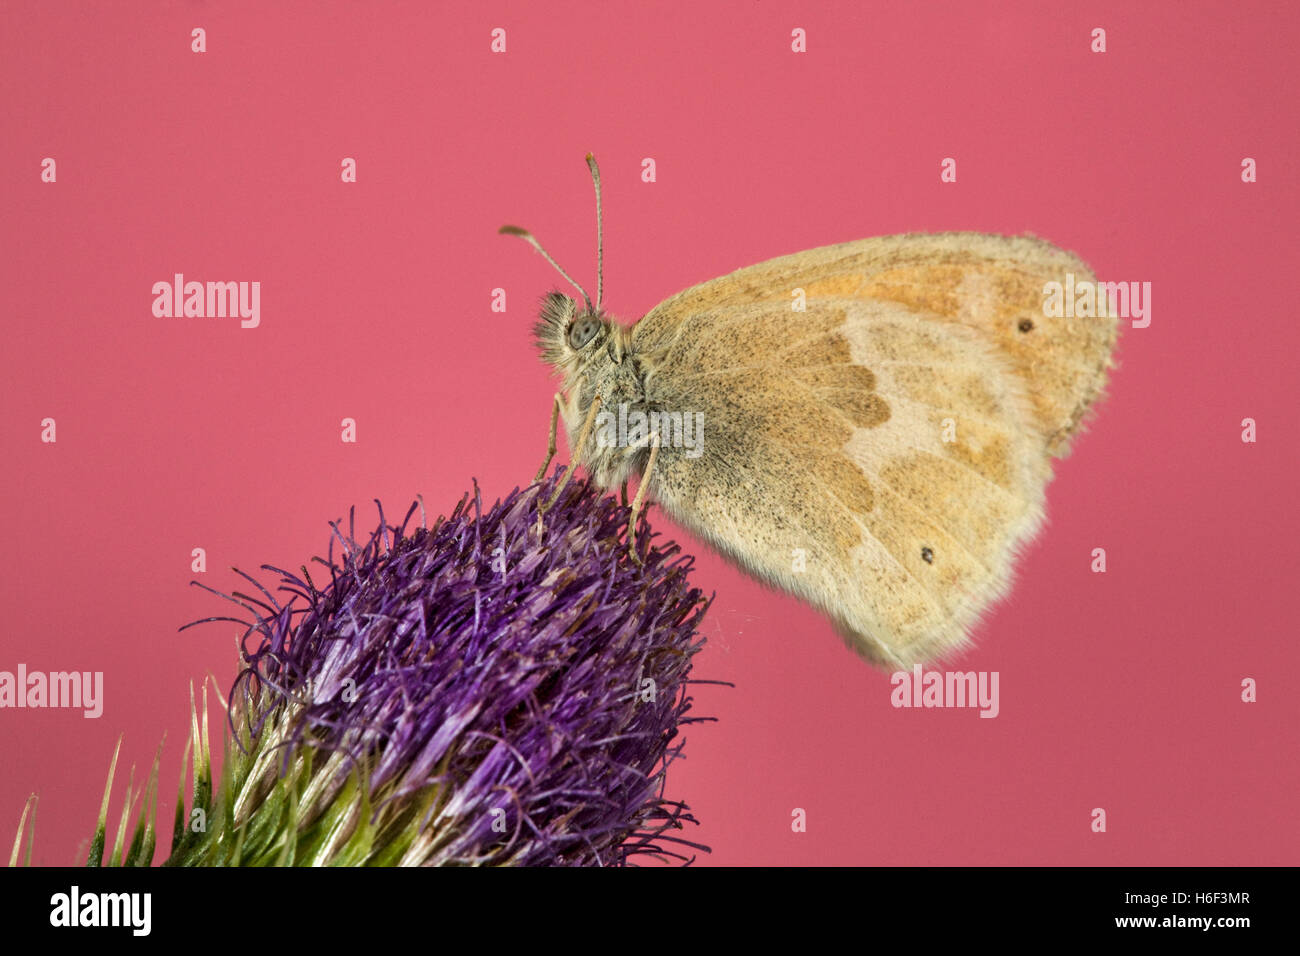 A dainty sulphur butterfly, Nathalis iole, also known as a dwarf yellow butterfly on a thistle - Stock Image